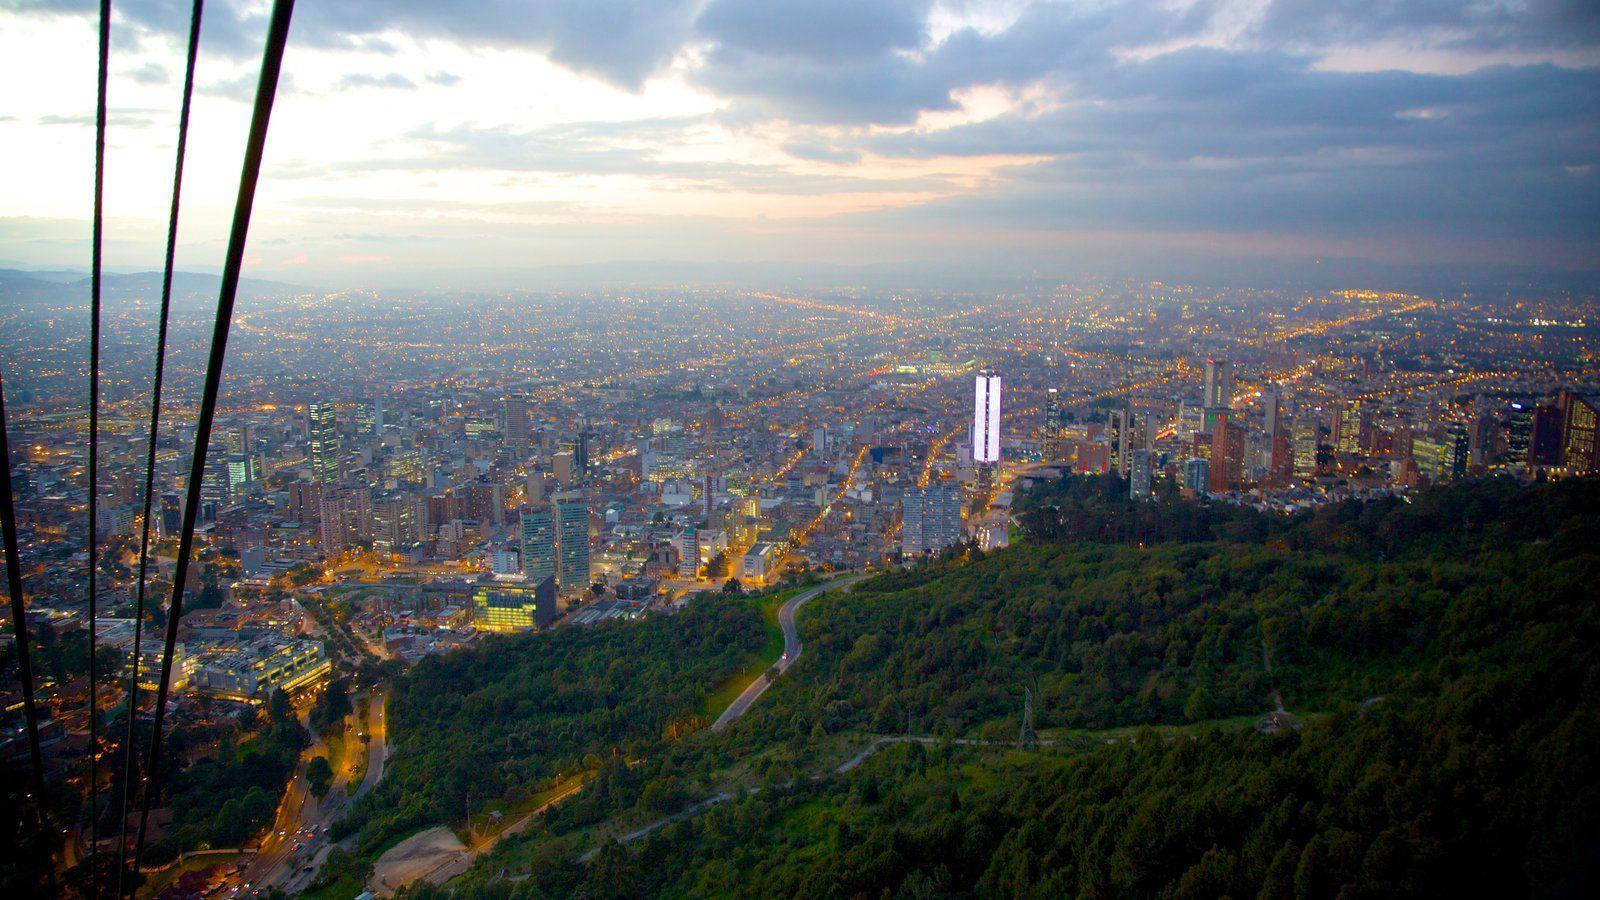 Landscape Pictures: View Images of Bogota